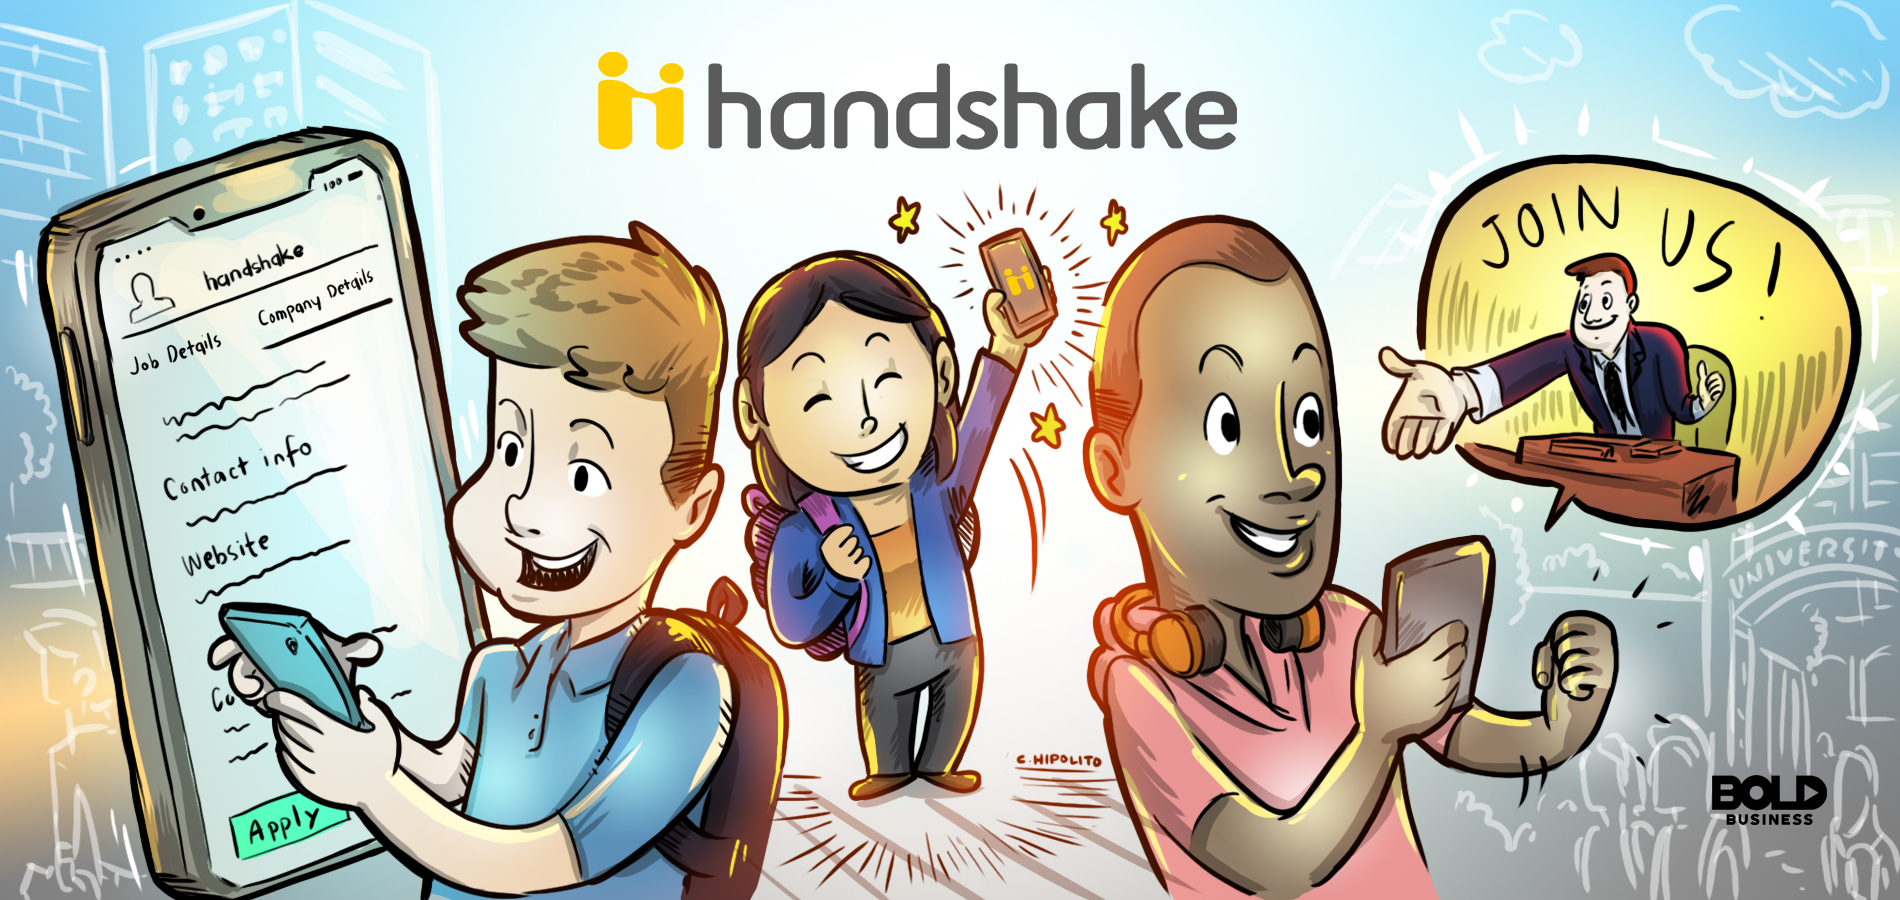 students getting hired by companies for internships through the handshake social media app